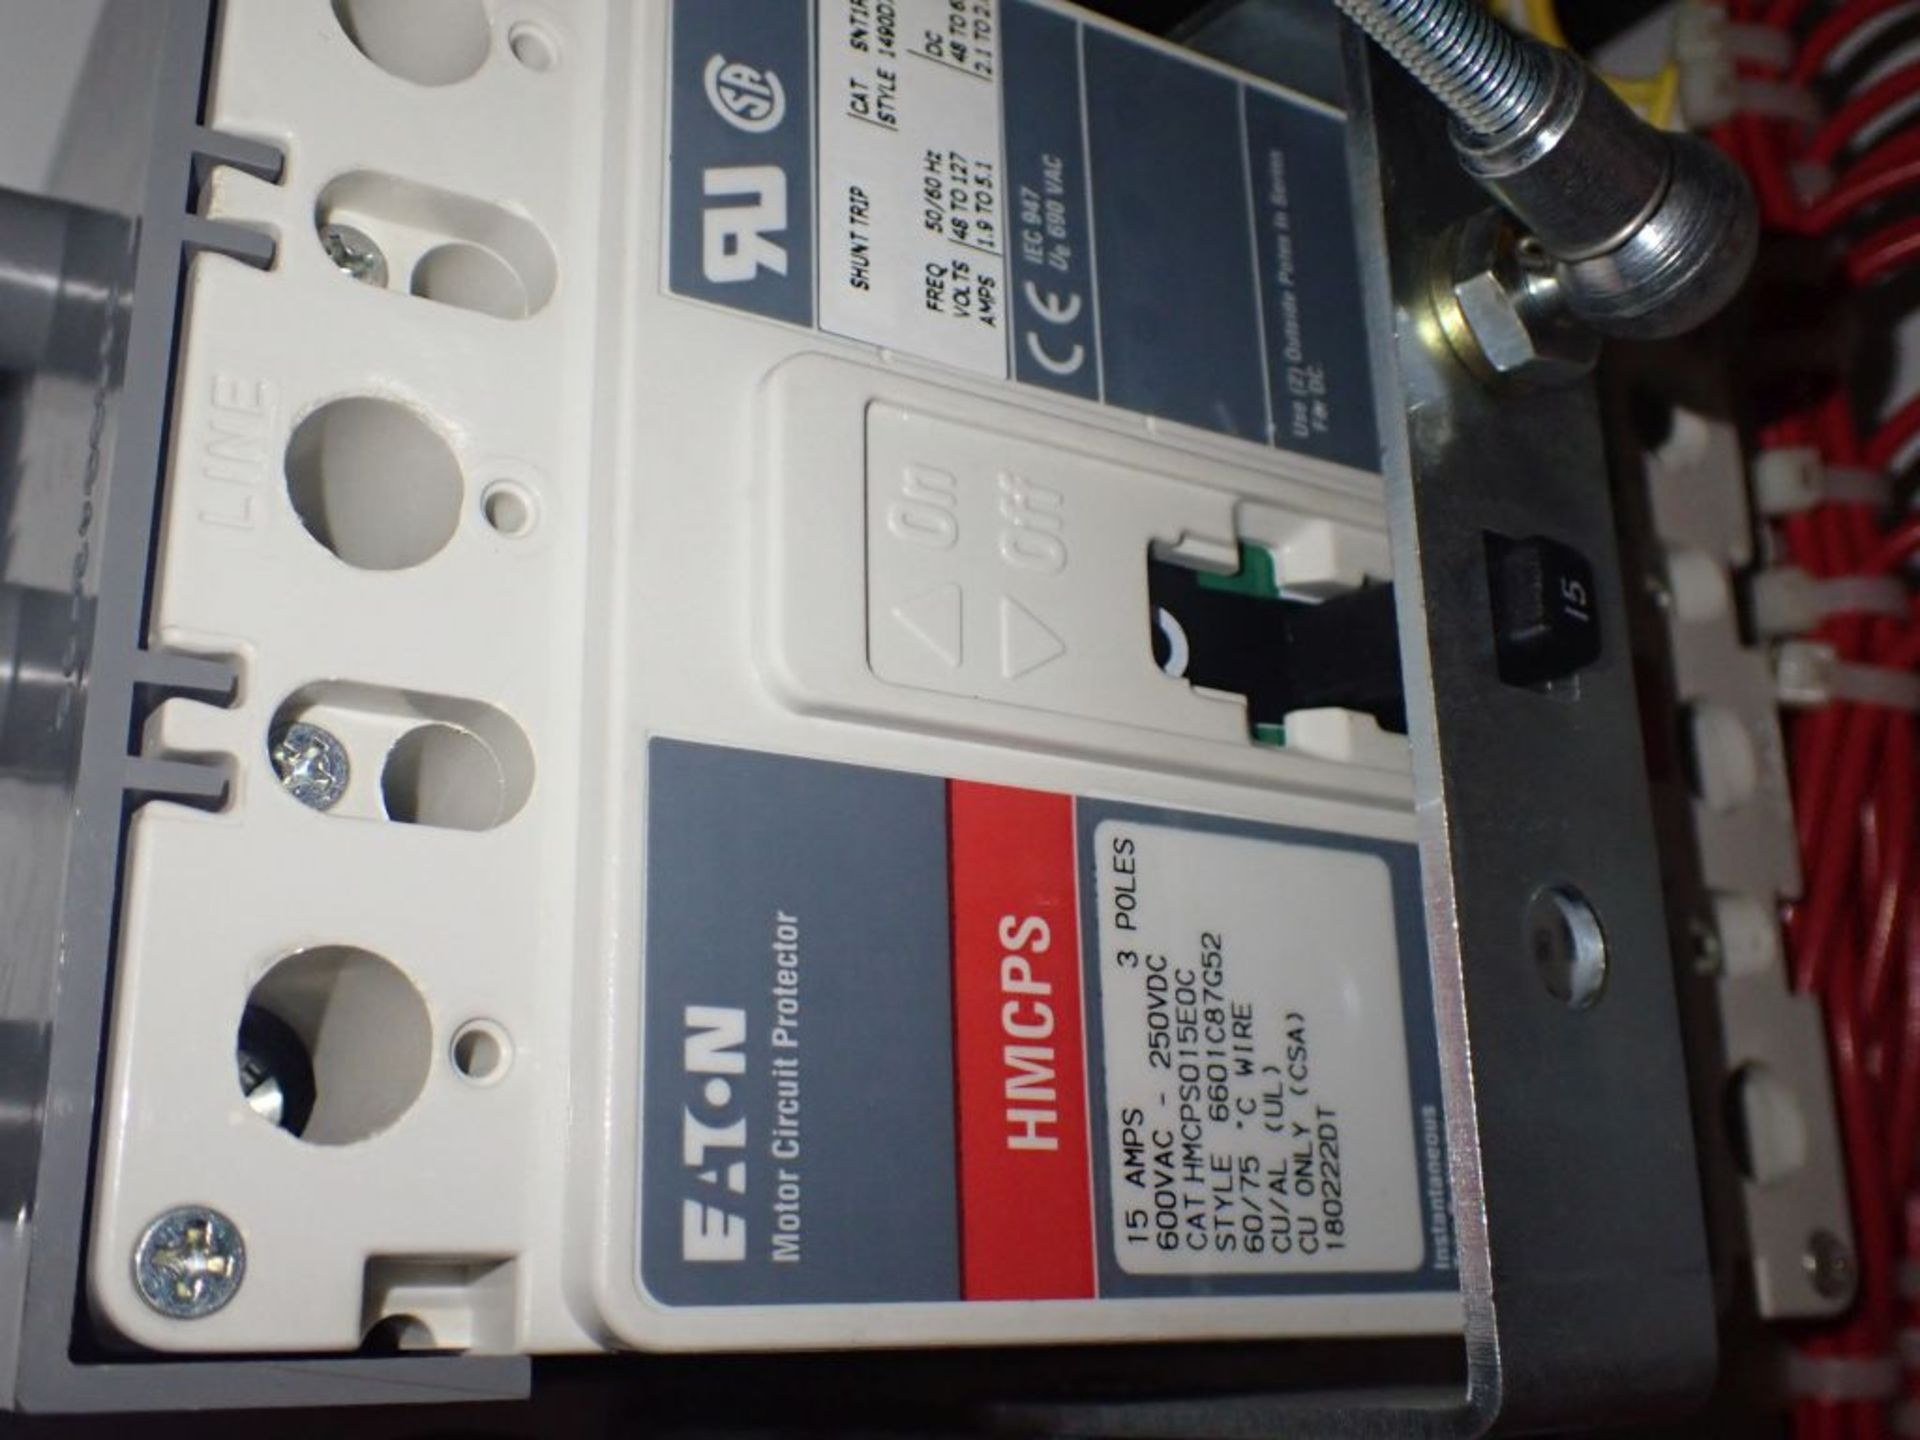 Eaton Freedom Flashgard Motor Control Center w/Components | (5) F206-15A-10HP; (4) F206-30A-10HP; ( - Image 13 of 84